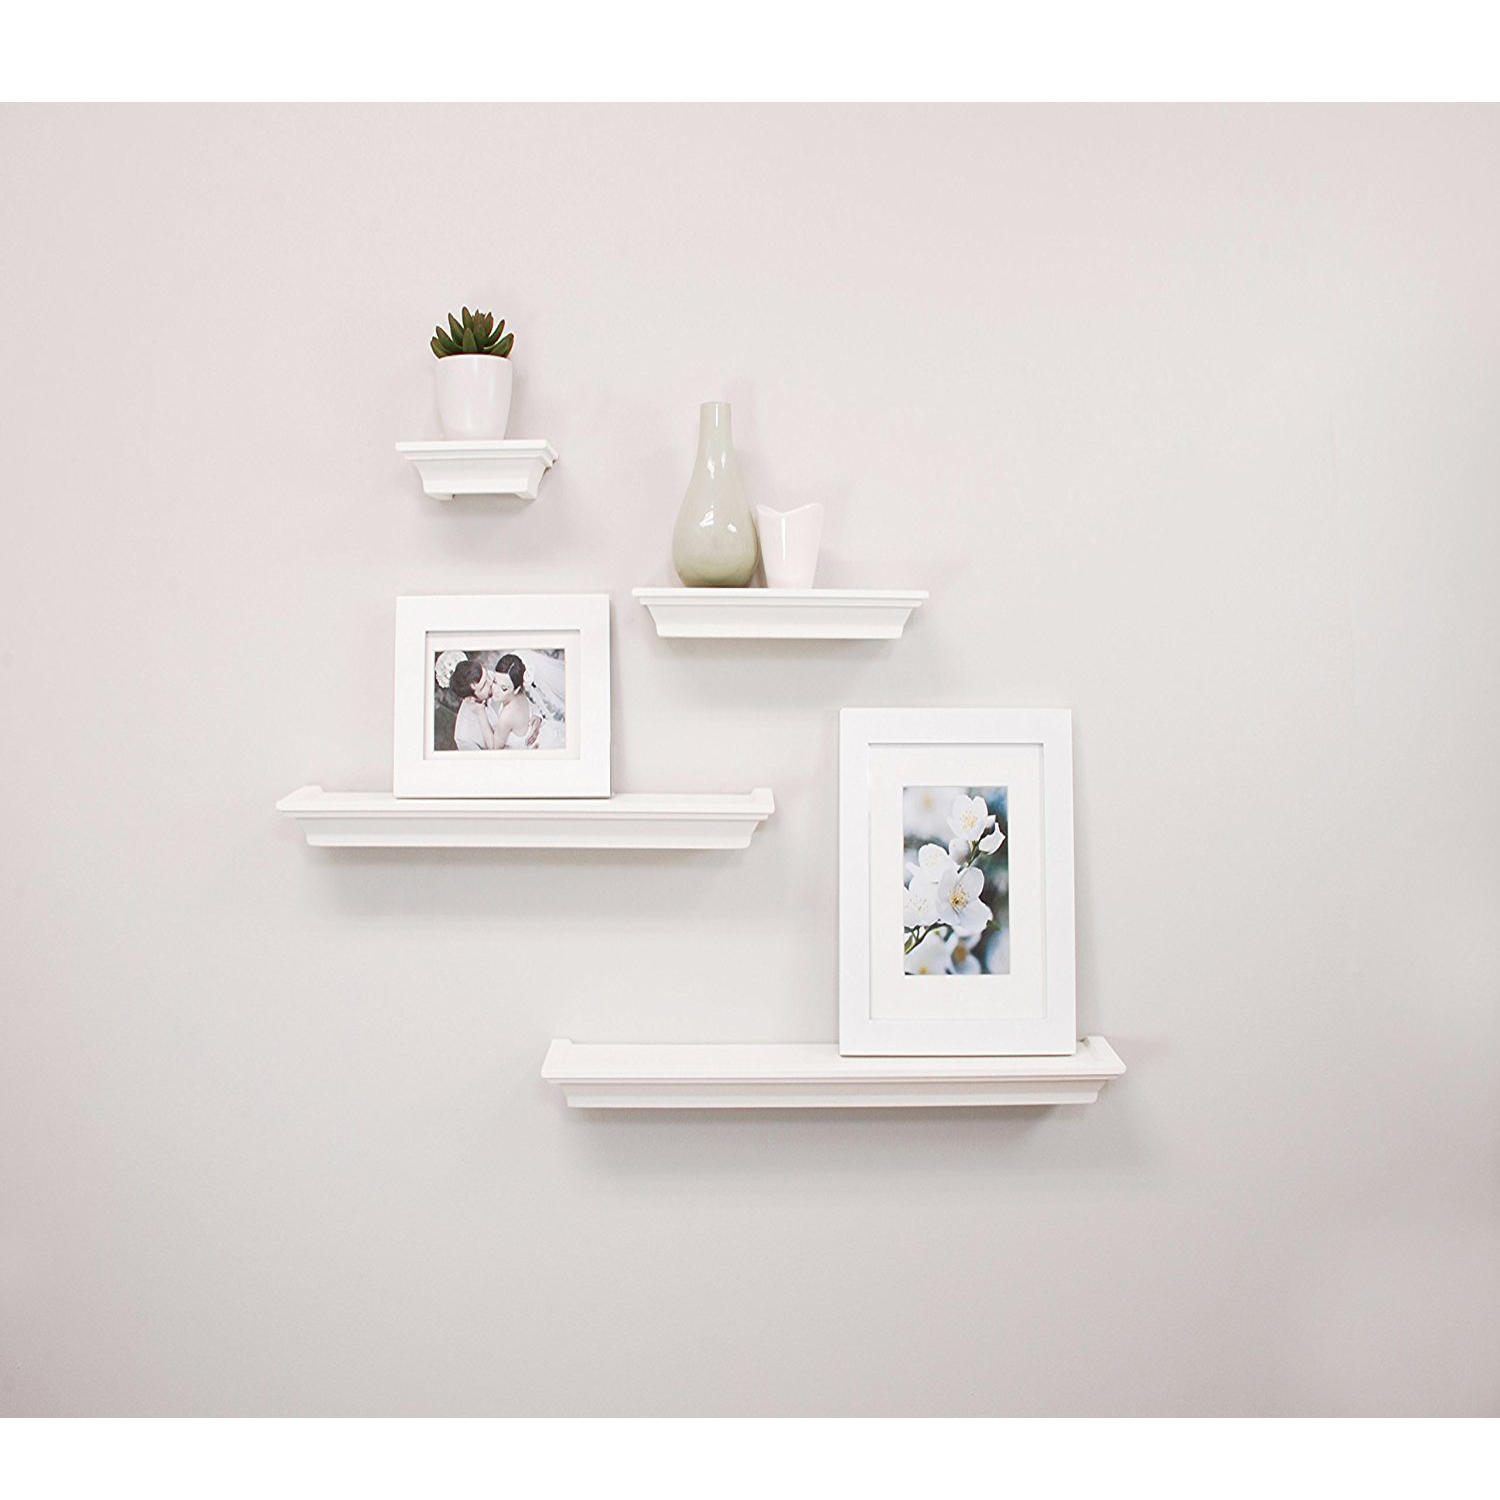 Set Of 4 Wall Mount Shelf Floating Display Home Decor